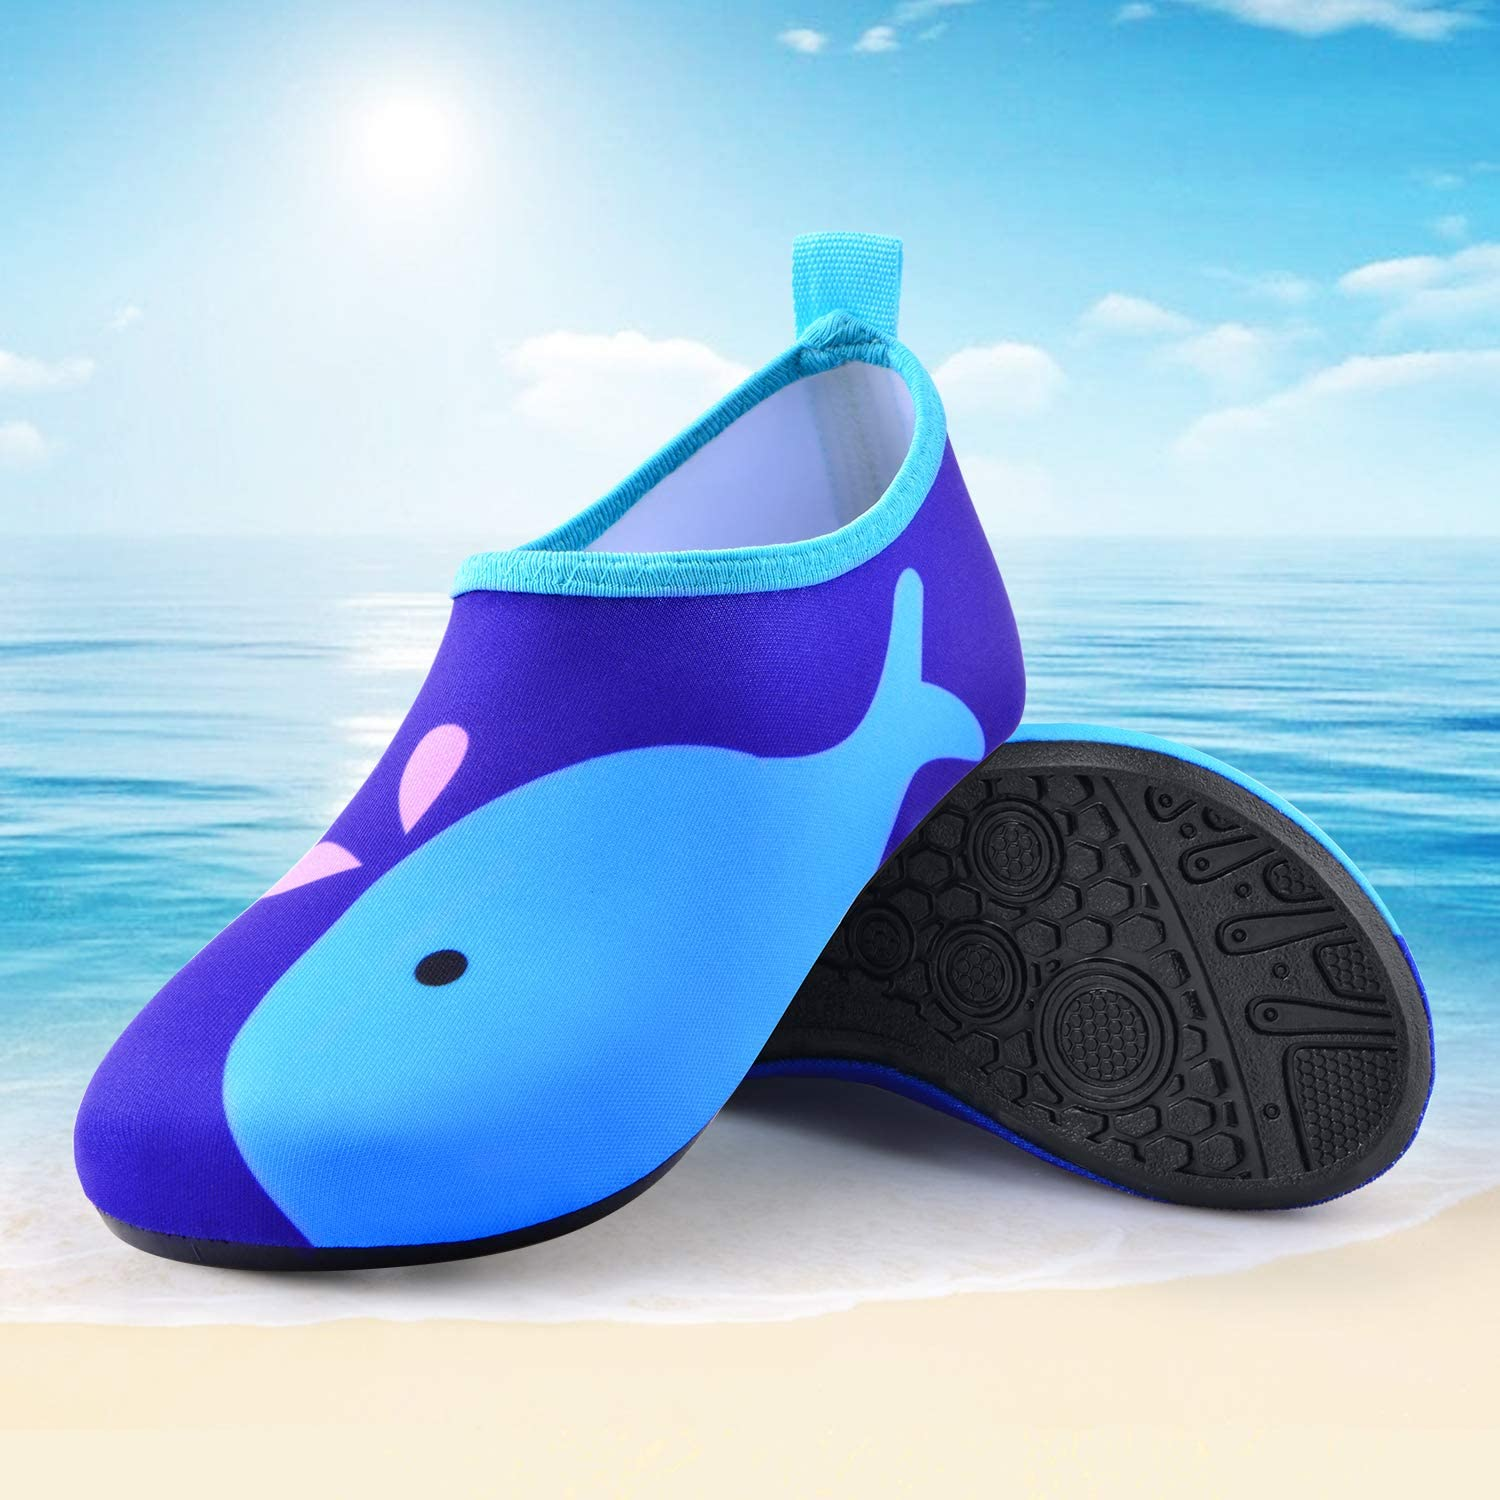 Sunnywoo Water Shoes for Kids Girls Boys,Toddler Kids Swim Water Shoes Quick Dry Non-Slip Water Skin Barefoot Sports Shoes Aqua/Socks for Beach Outdoor Sports